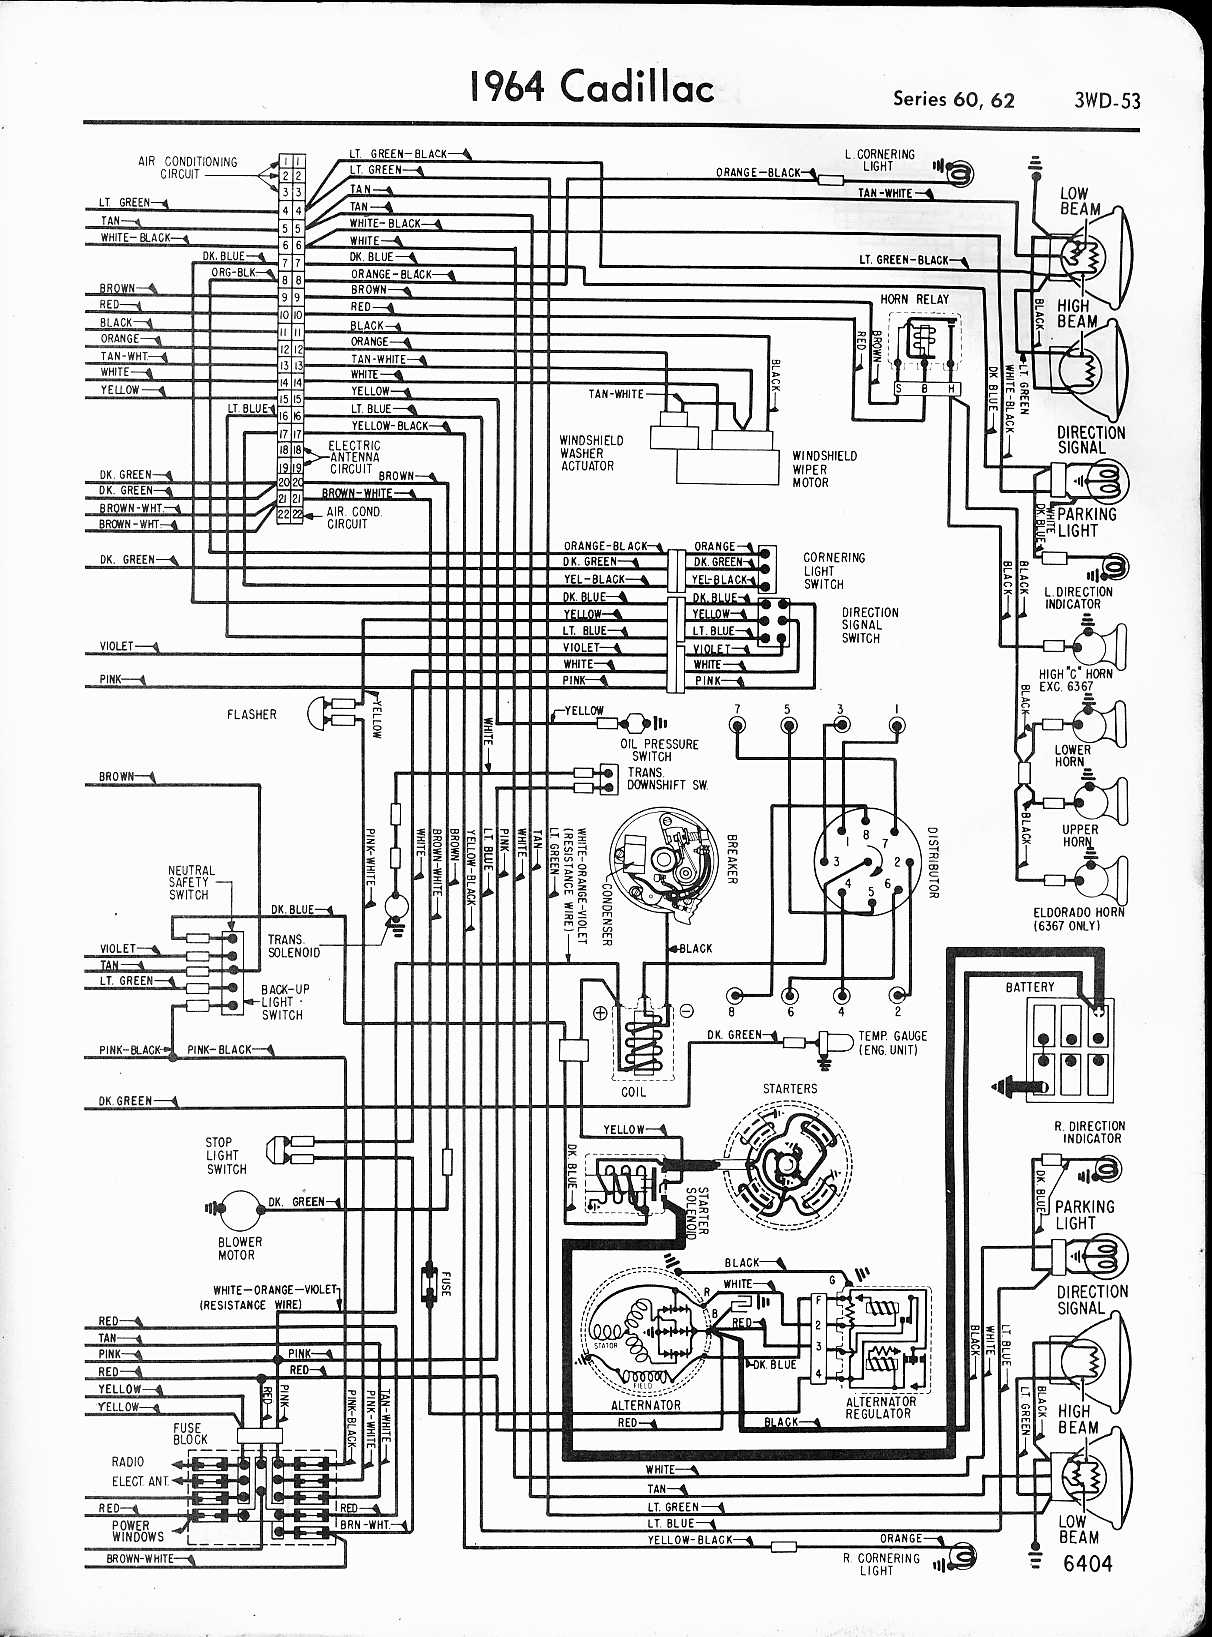 MWireCadi65_3WD 053 1964 cadillac ac wiring diagram wiring diagram all data